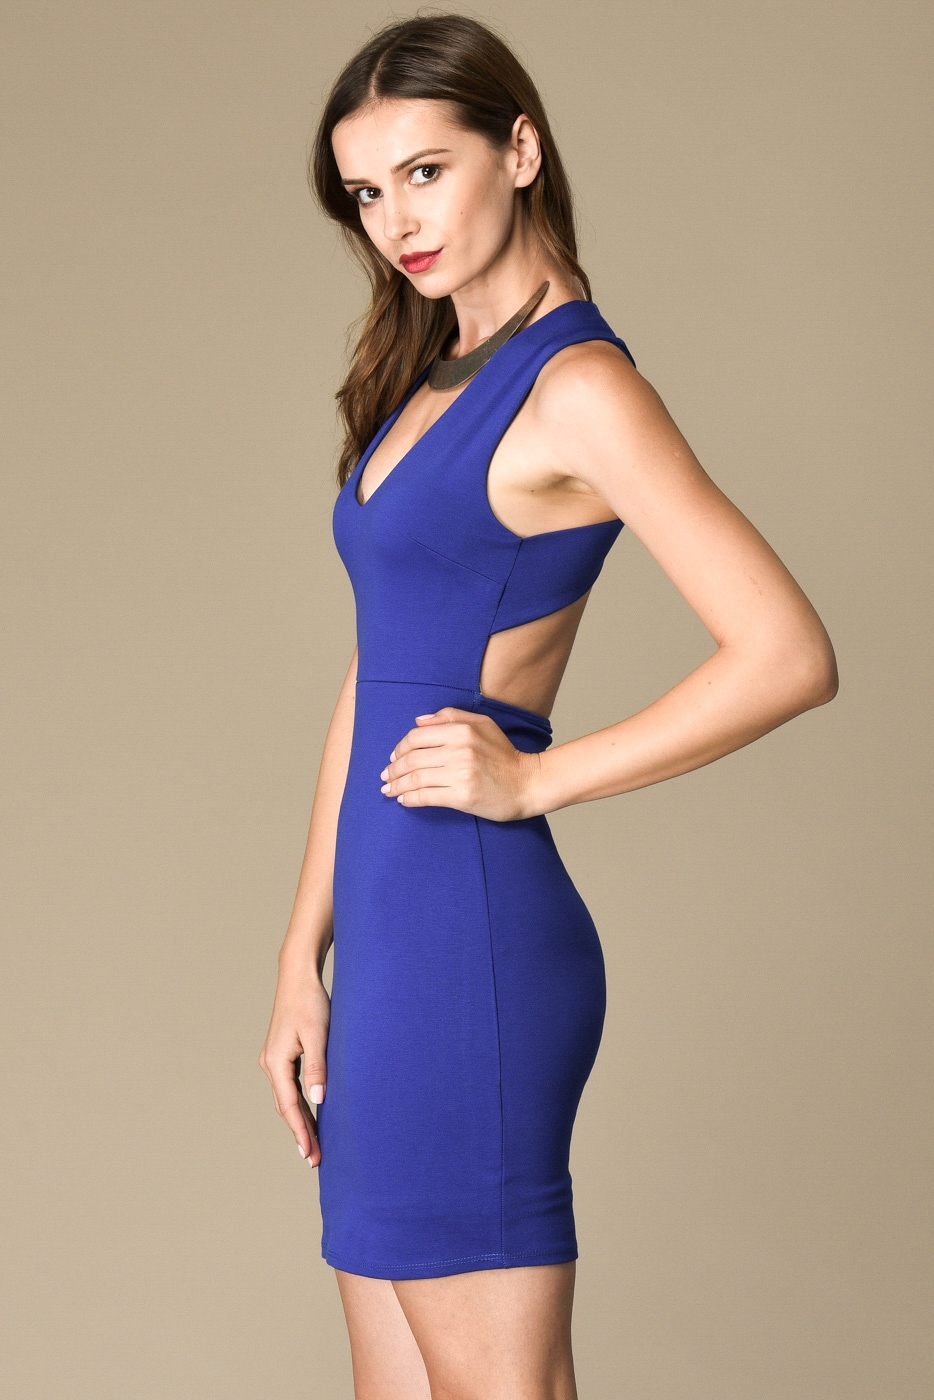 X BACK BODYCON DRESS WITH BACK - orangeshine.com